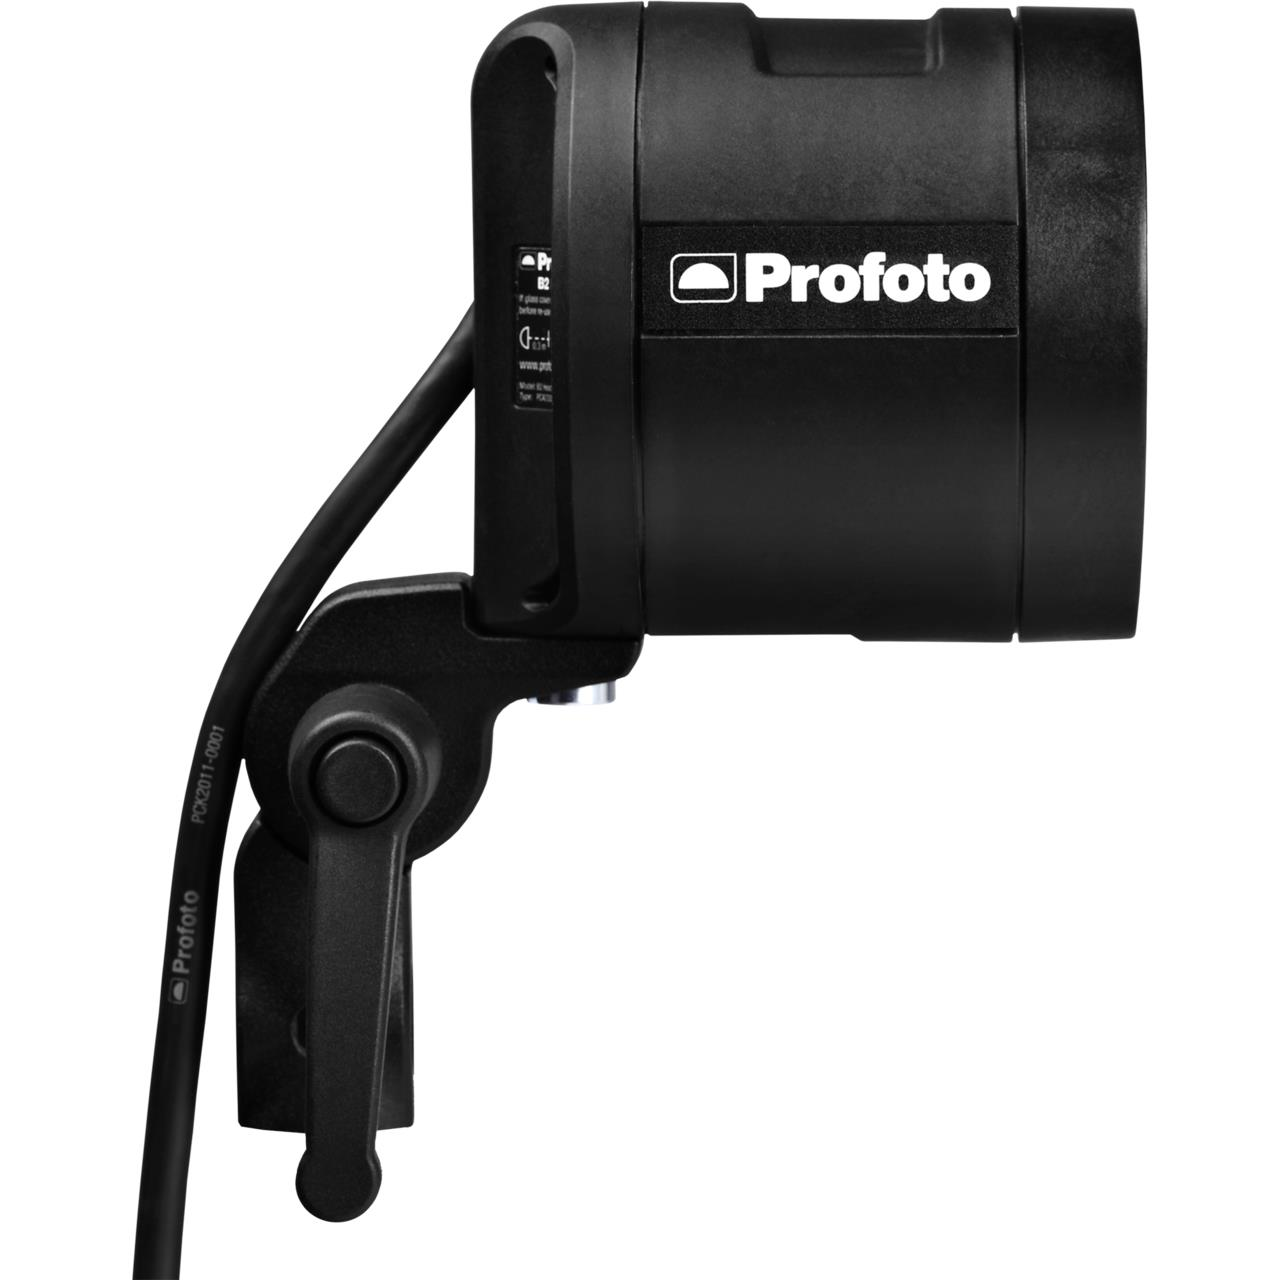 901108-901109-901110_a_profoto-b2-head-profile_productimage